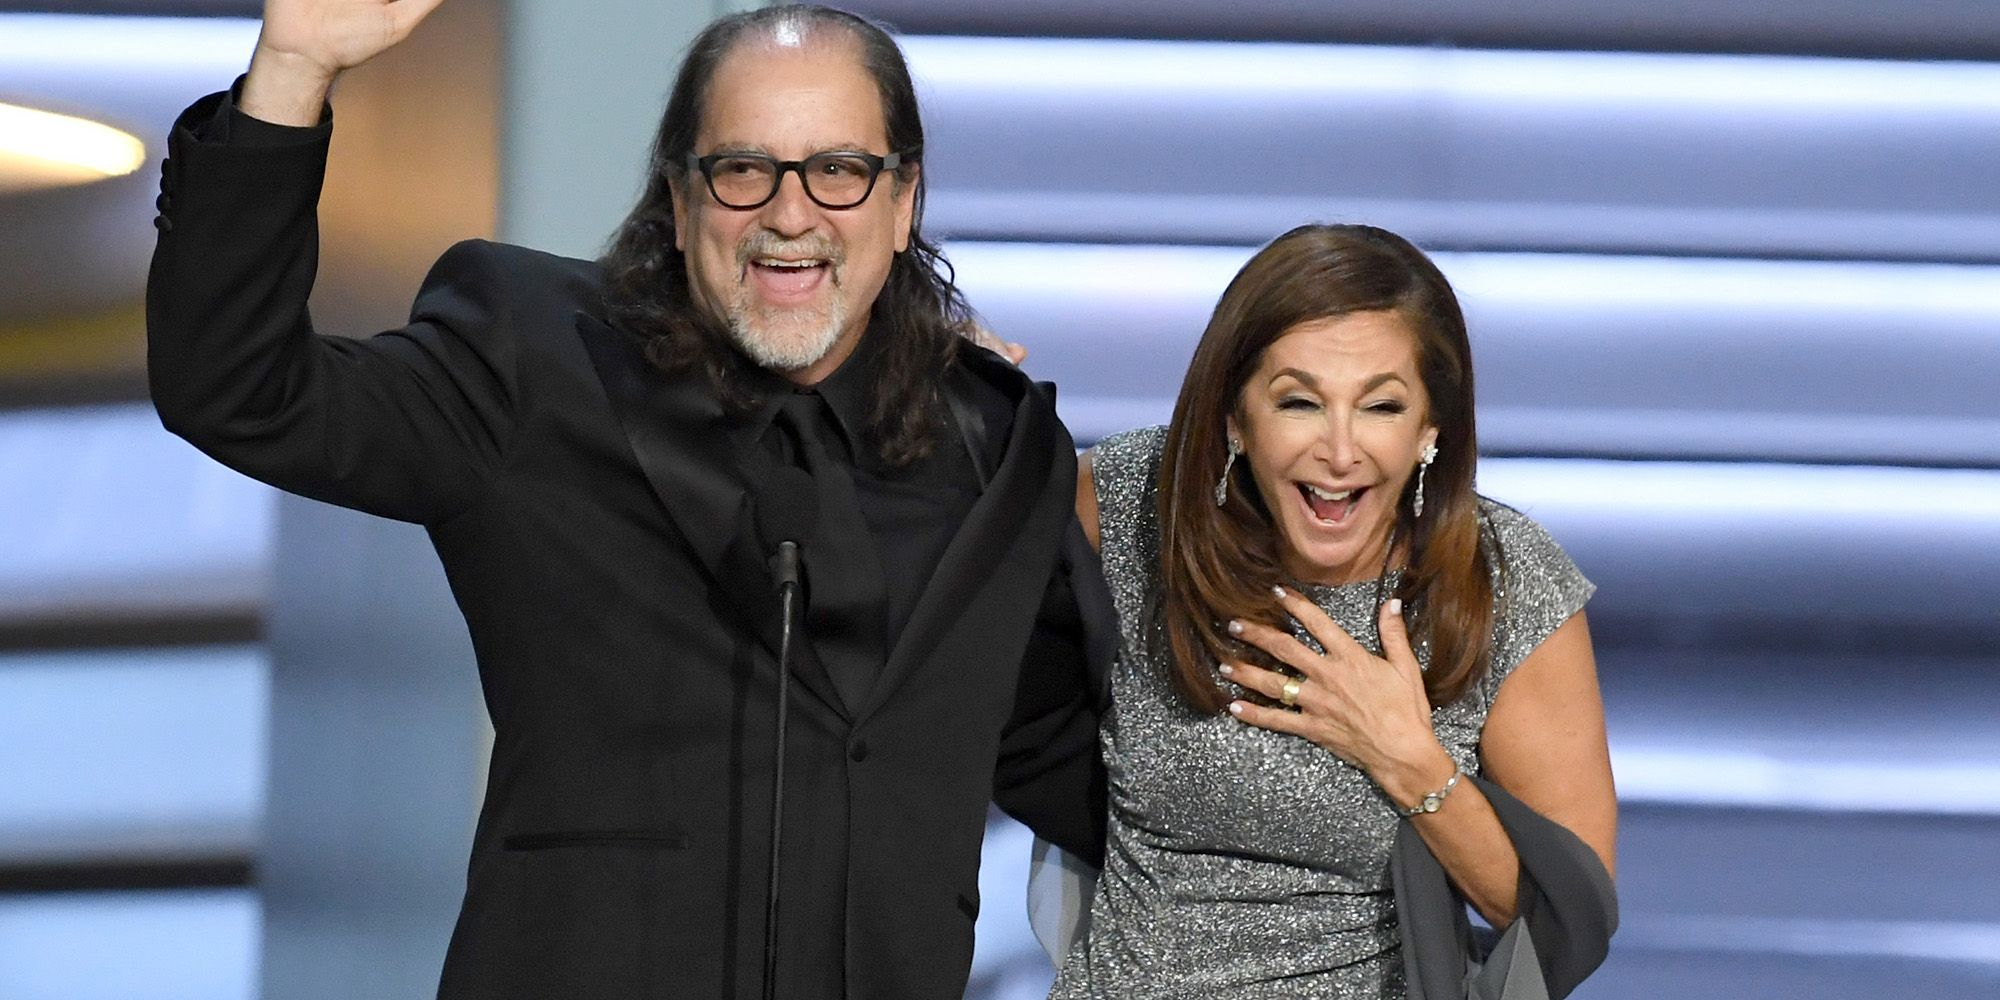 An Oscars Director Just Proposed to His Girlfriend Onstage at the Emmys and Im Weeping